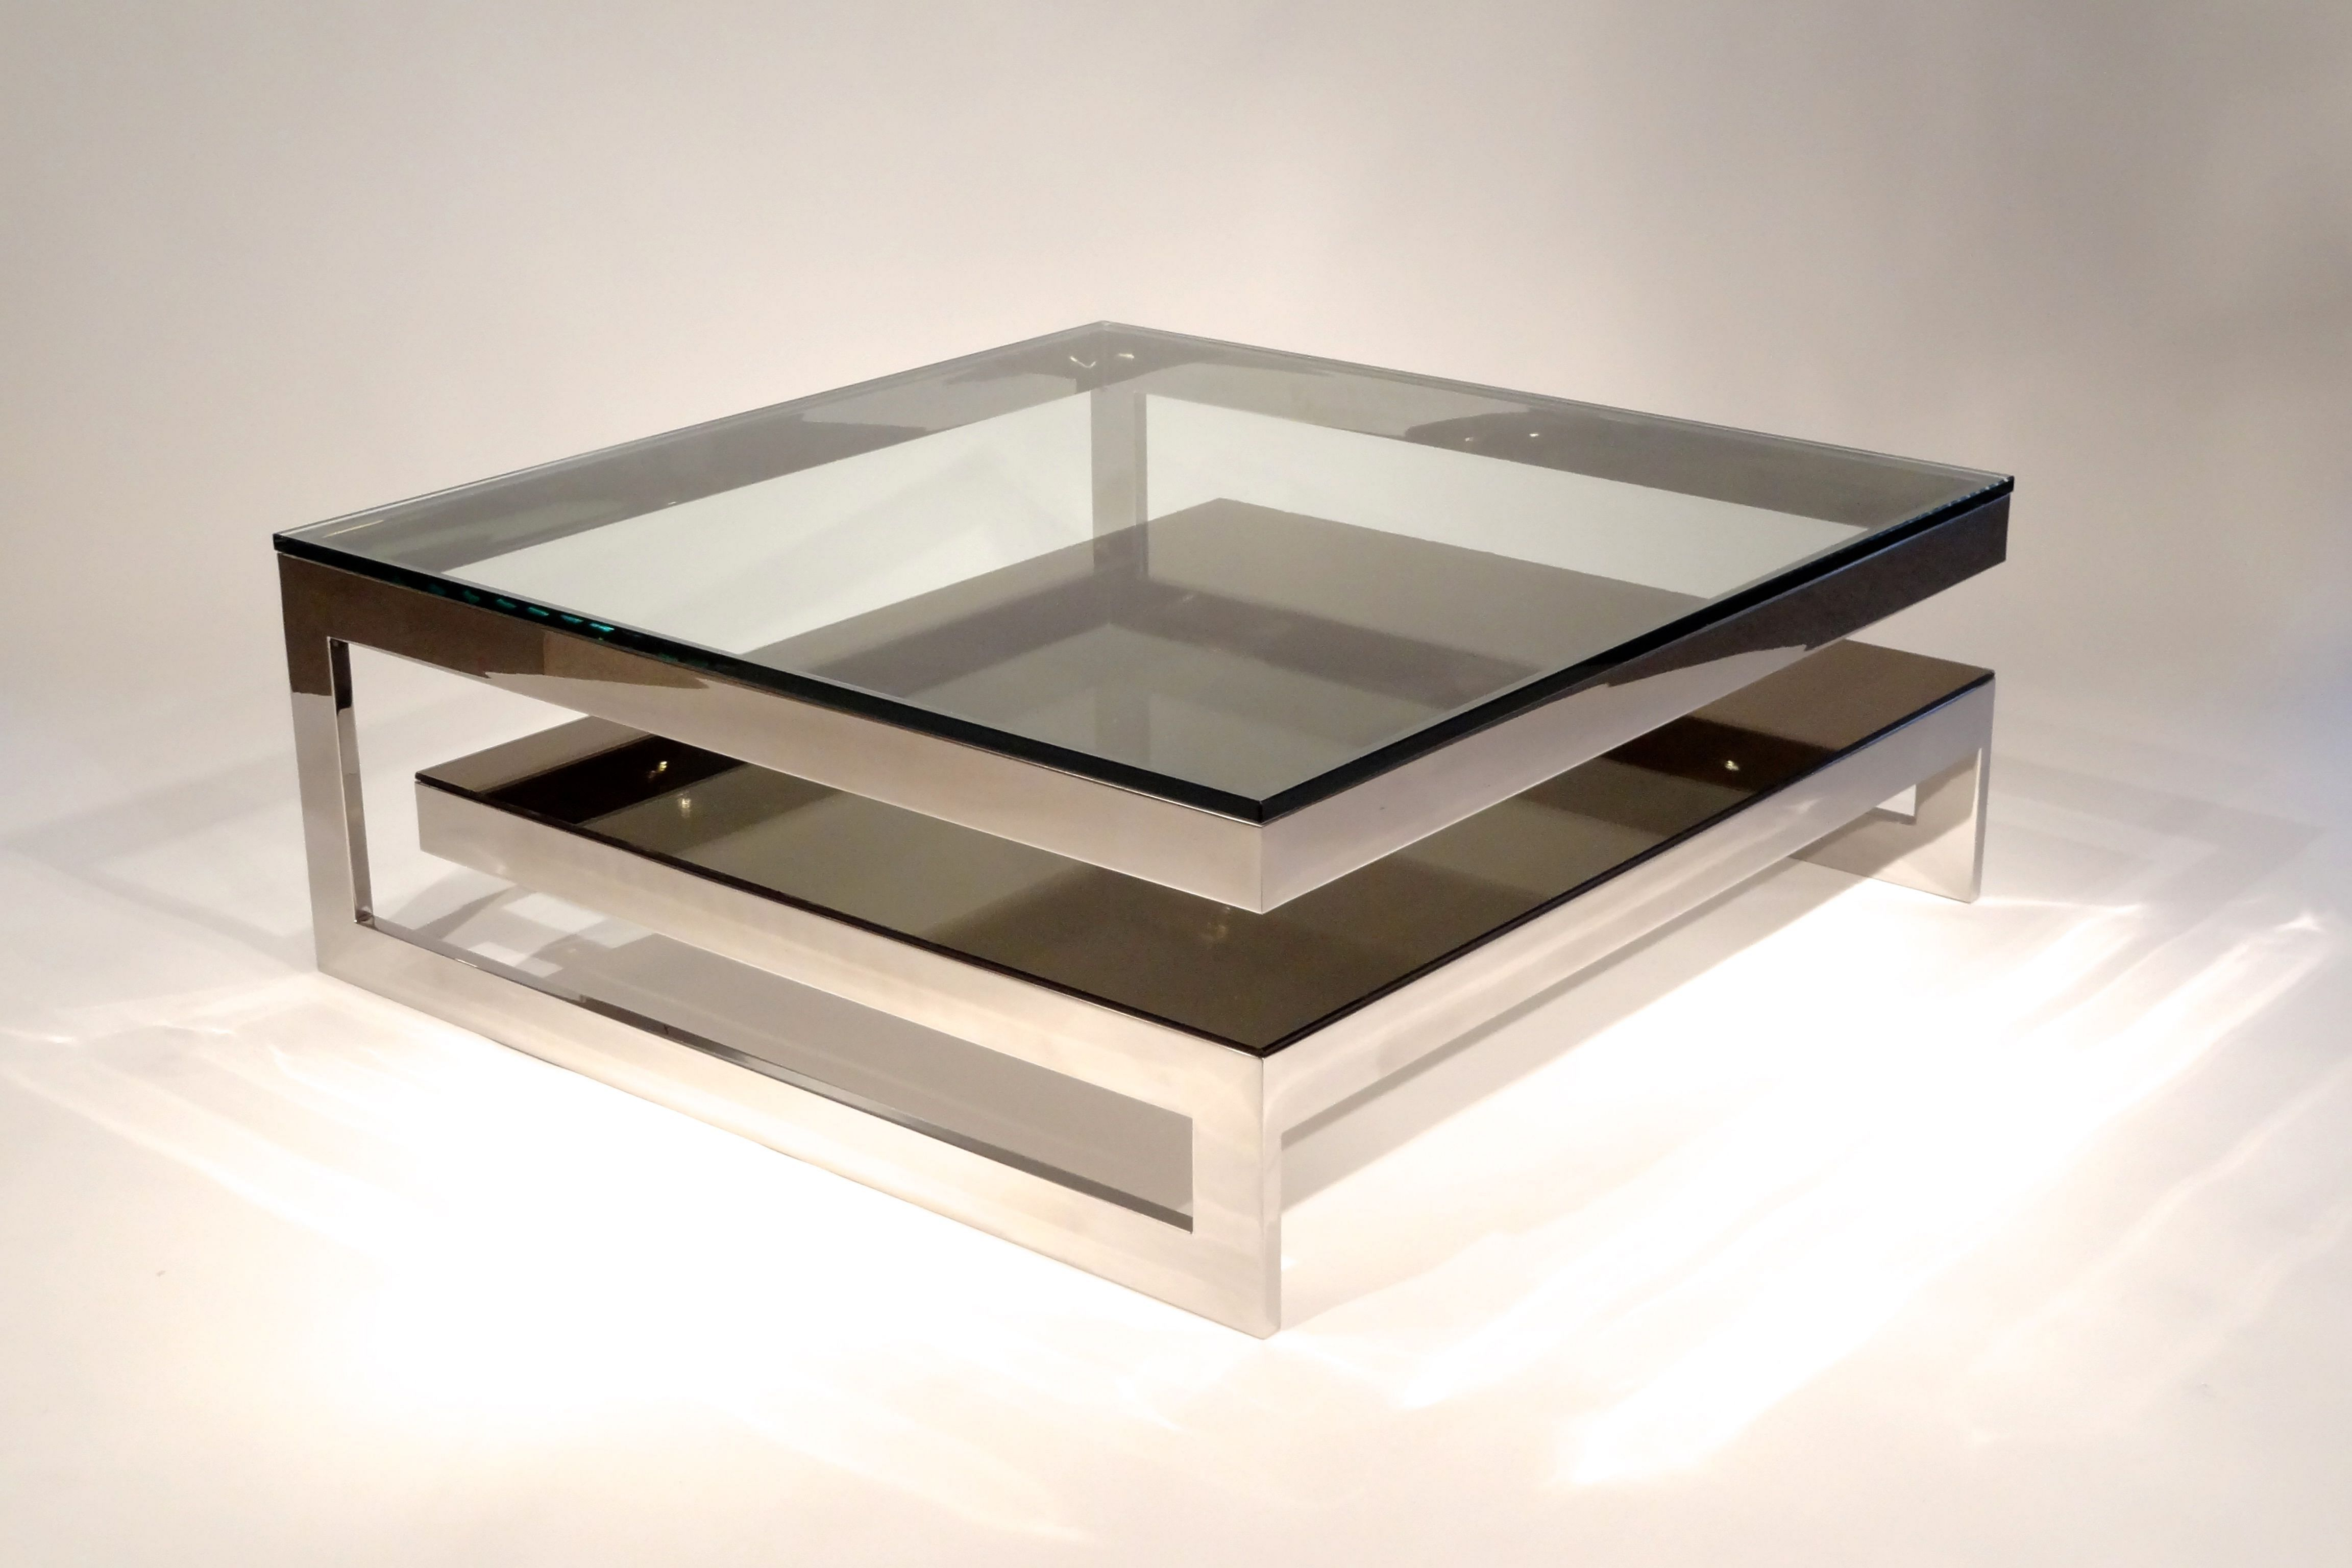 Impressive 30 Coffee Table Design For Your Living Room Square Glass Coffee Table Coffee Table Furniture Contemporary Coffee Table [ 3072 x 4608 Pixel ]